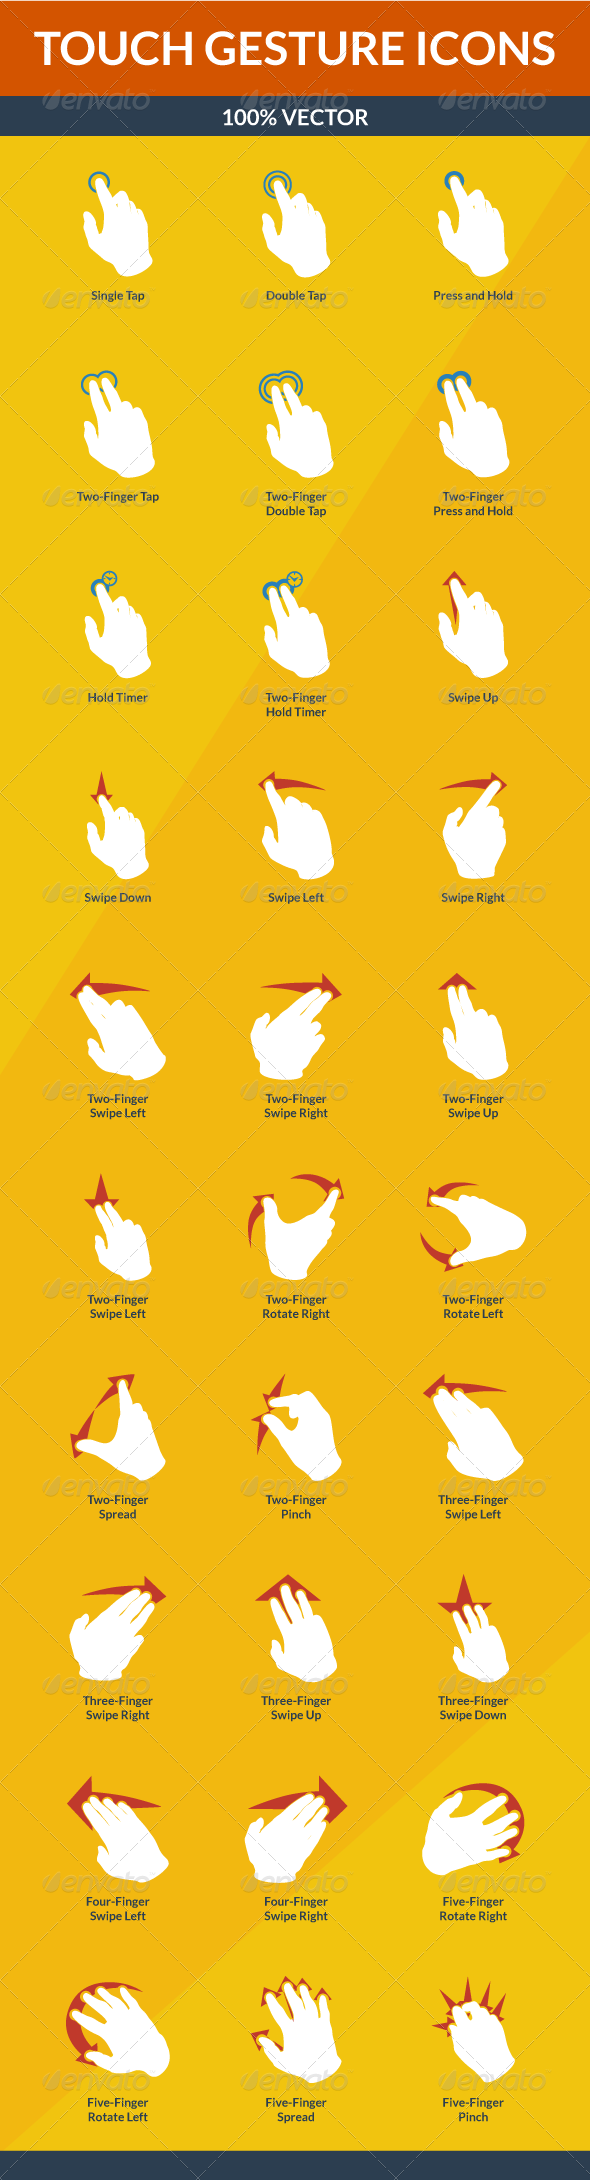 GraphicRiver Touch Gesture Icons 5607104